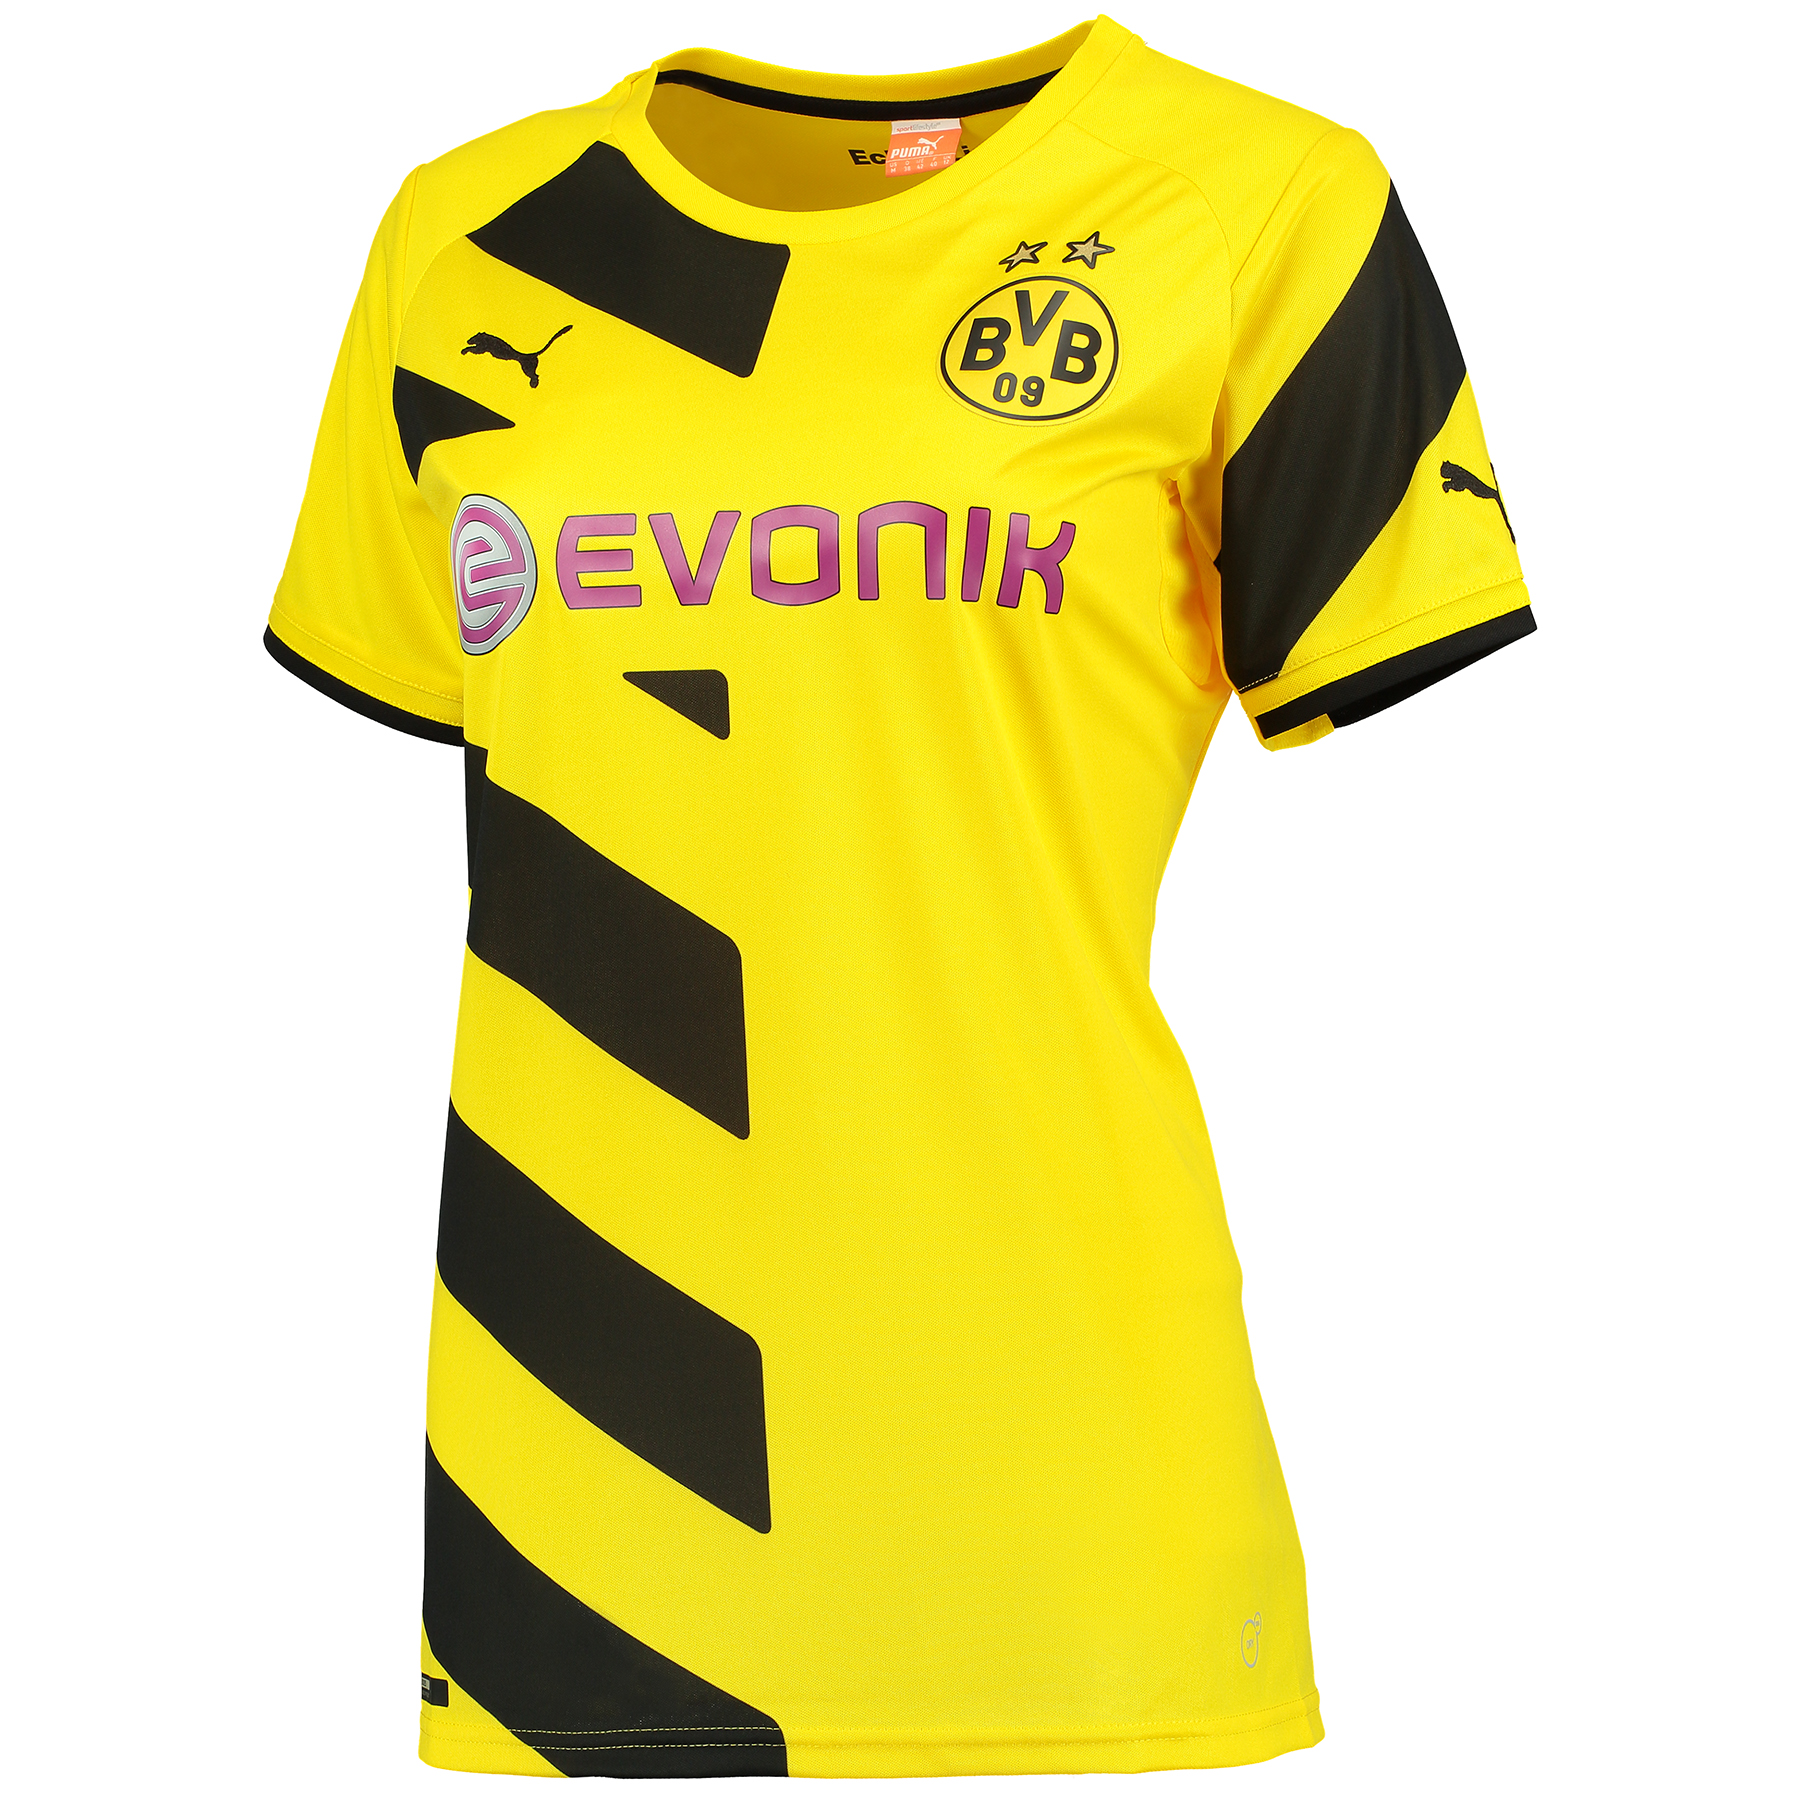 BVB Home Shirt 2014/15 - Womens